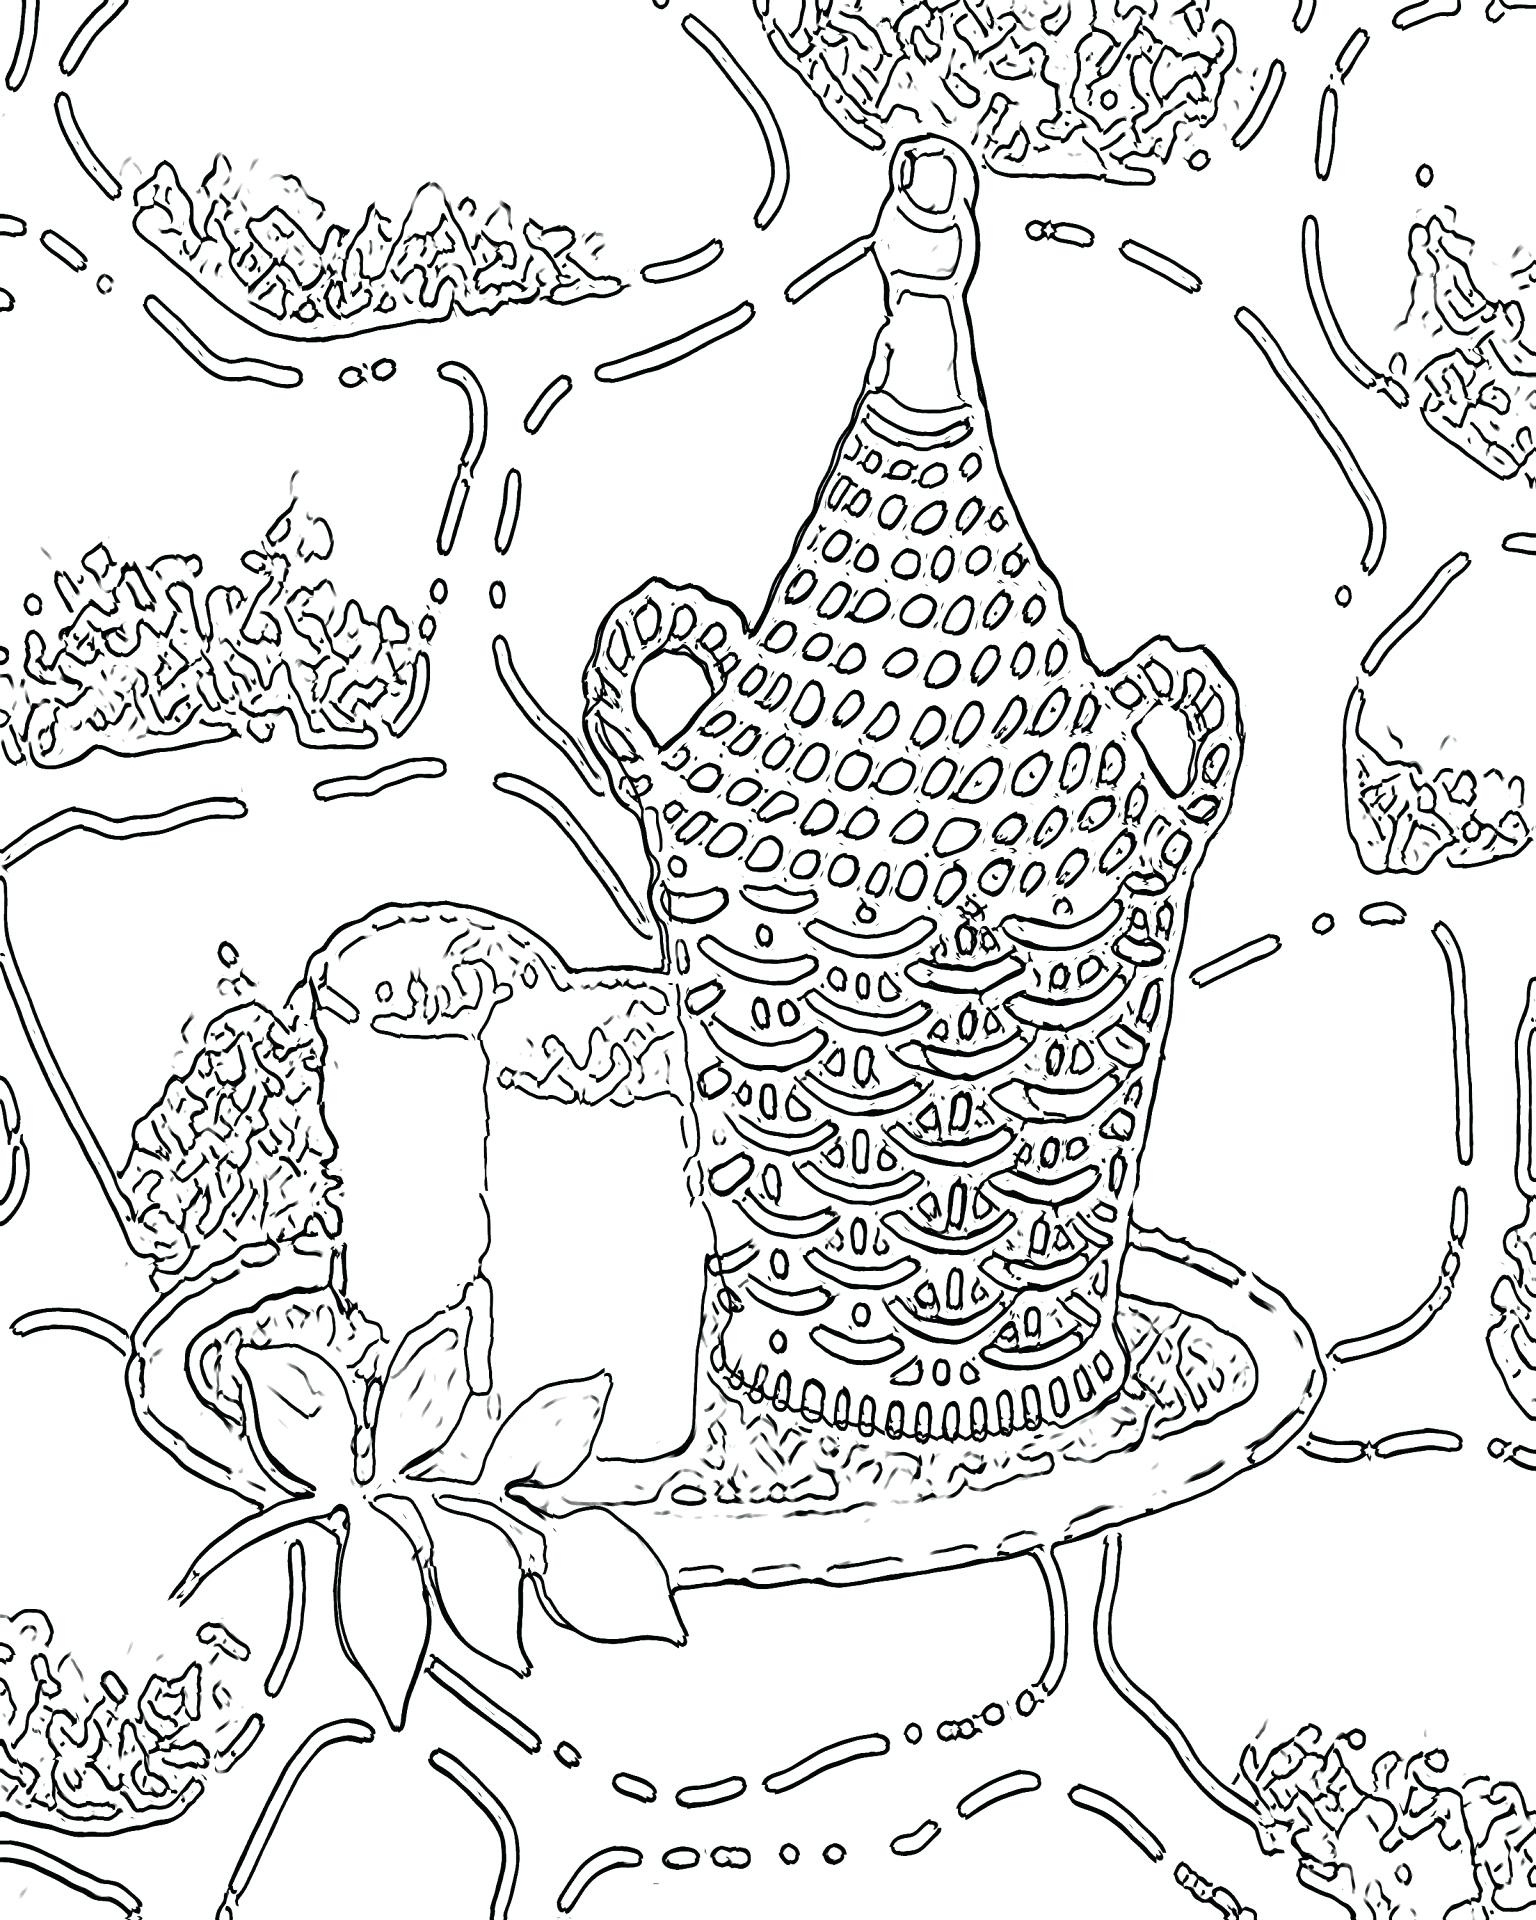 Coloring Pages : Fresh Printable Nature Coloring Pages For Adults - Free Printable Nature Coloring Pages For Adults